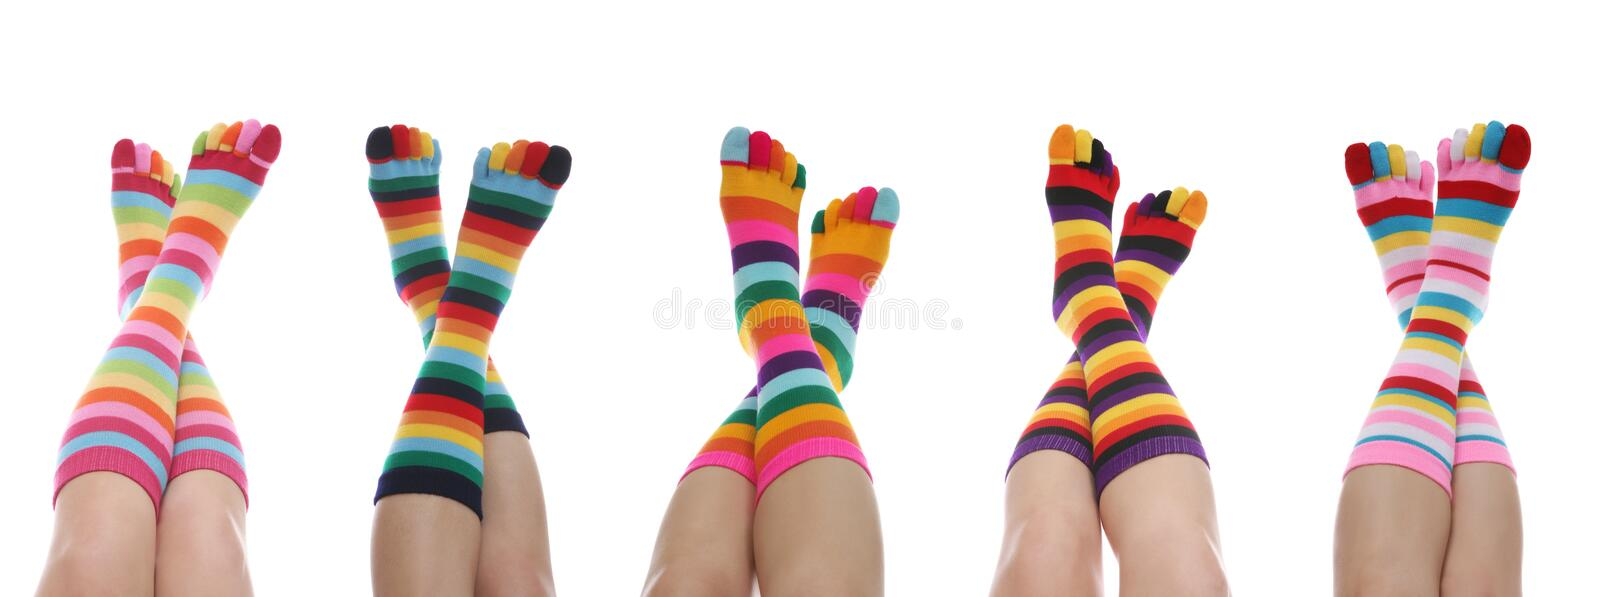 Colorful Socks stock photos